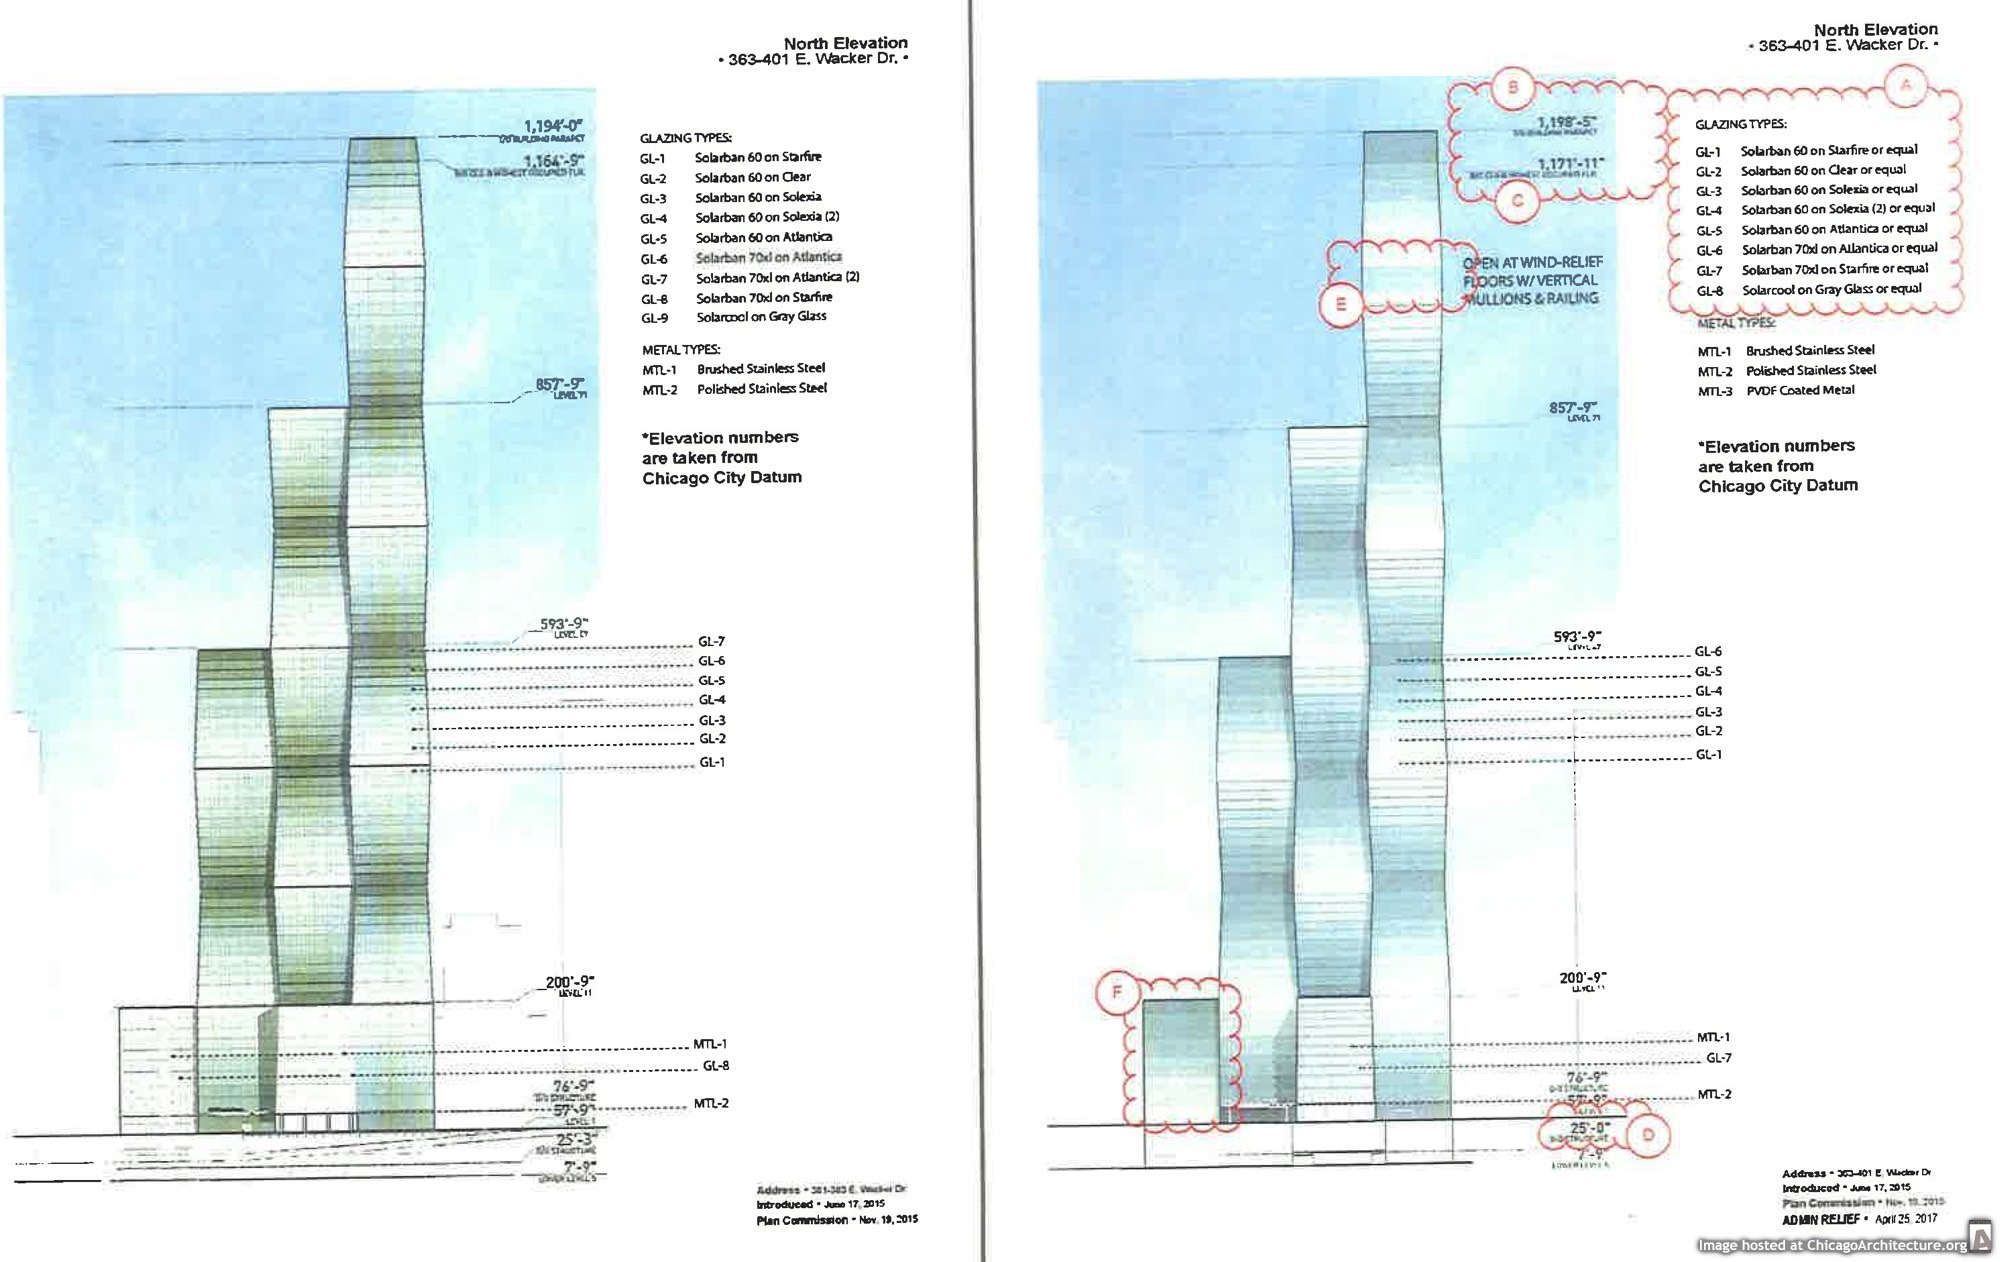 Diagram of the Vista Tower